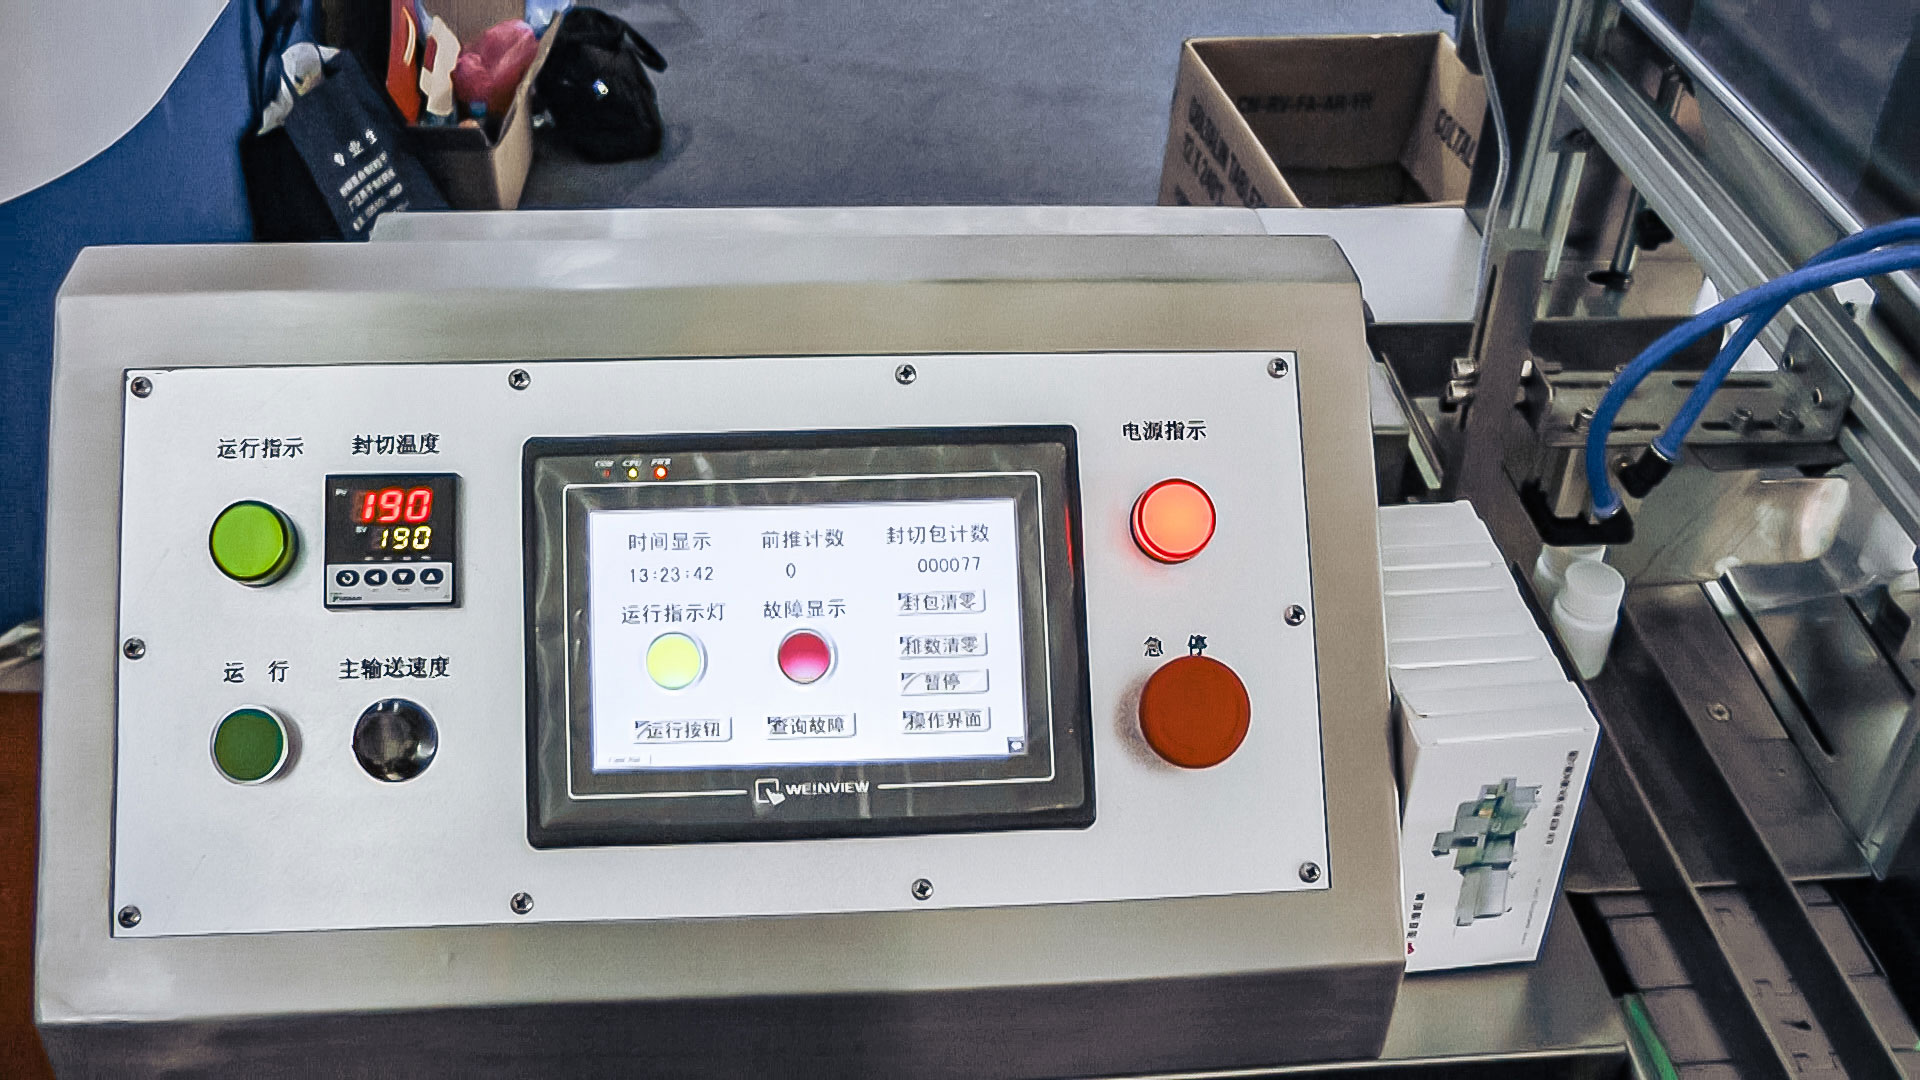 Automatic equipment group packing bottles in cellophane in pharmaceutical production